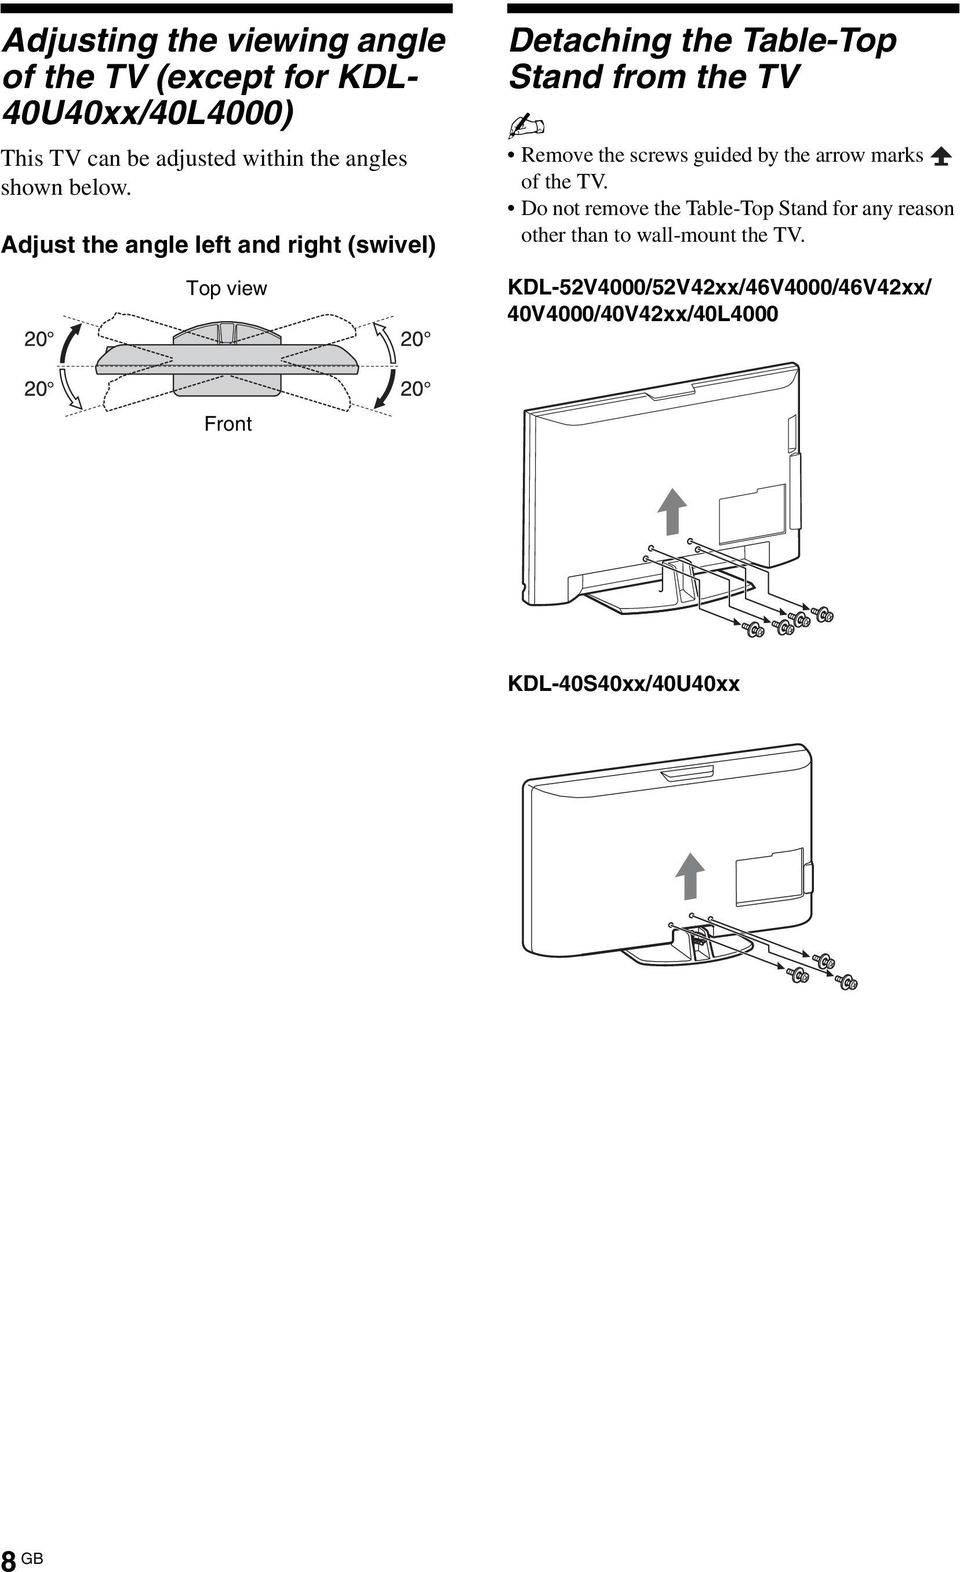 Adjust the angle left and right (swivel) Top view Detaching the Table-Top Stand from the TV Remove the screws